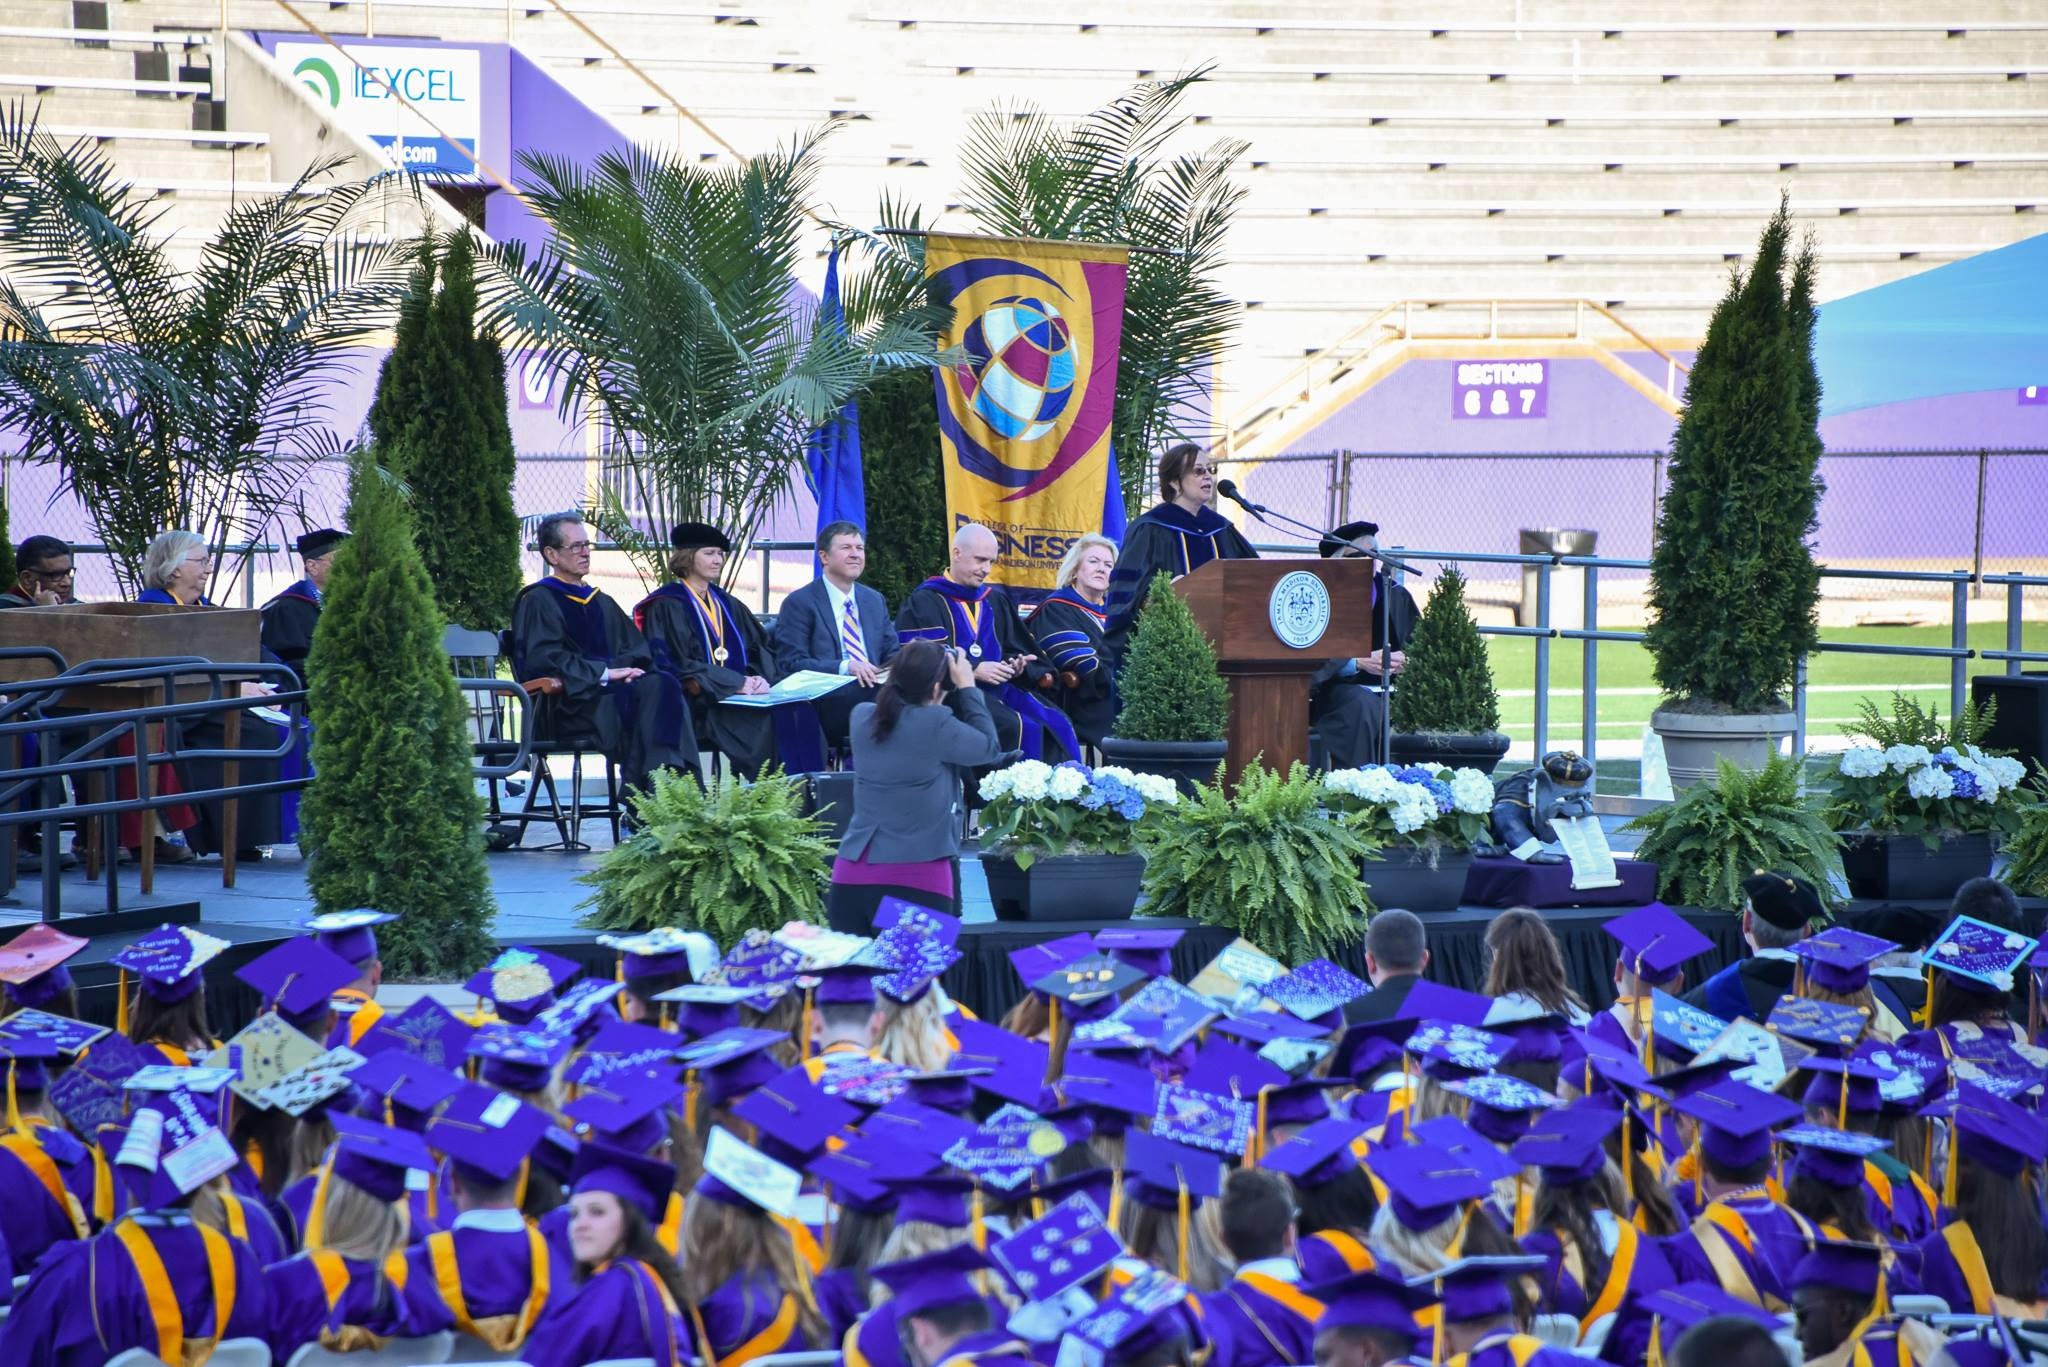 Dr. Theresa Clarke's Commencement Speech to the JMU College of Business Class of 2017.